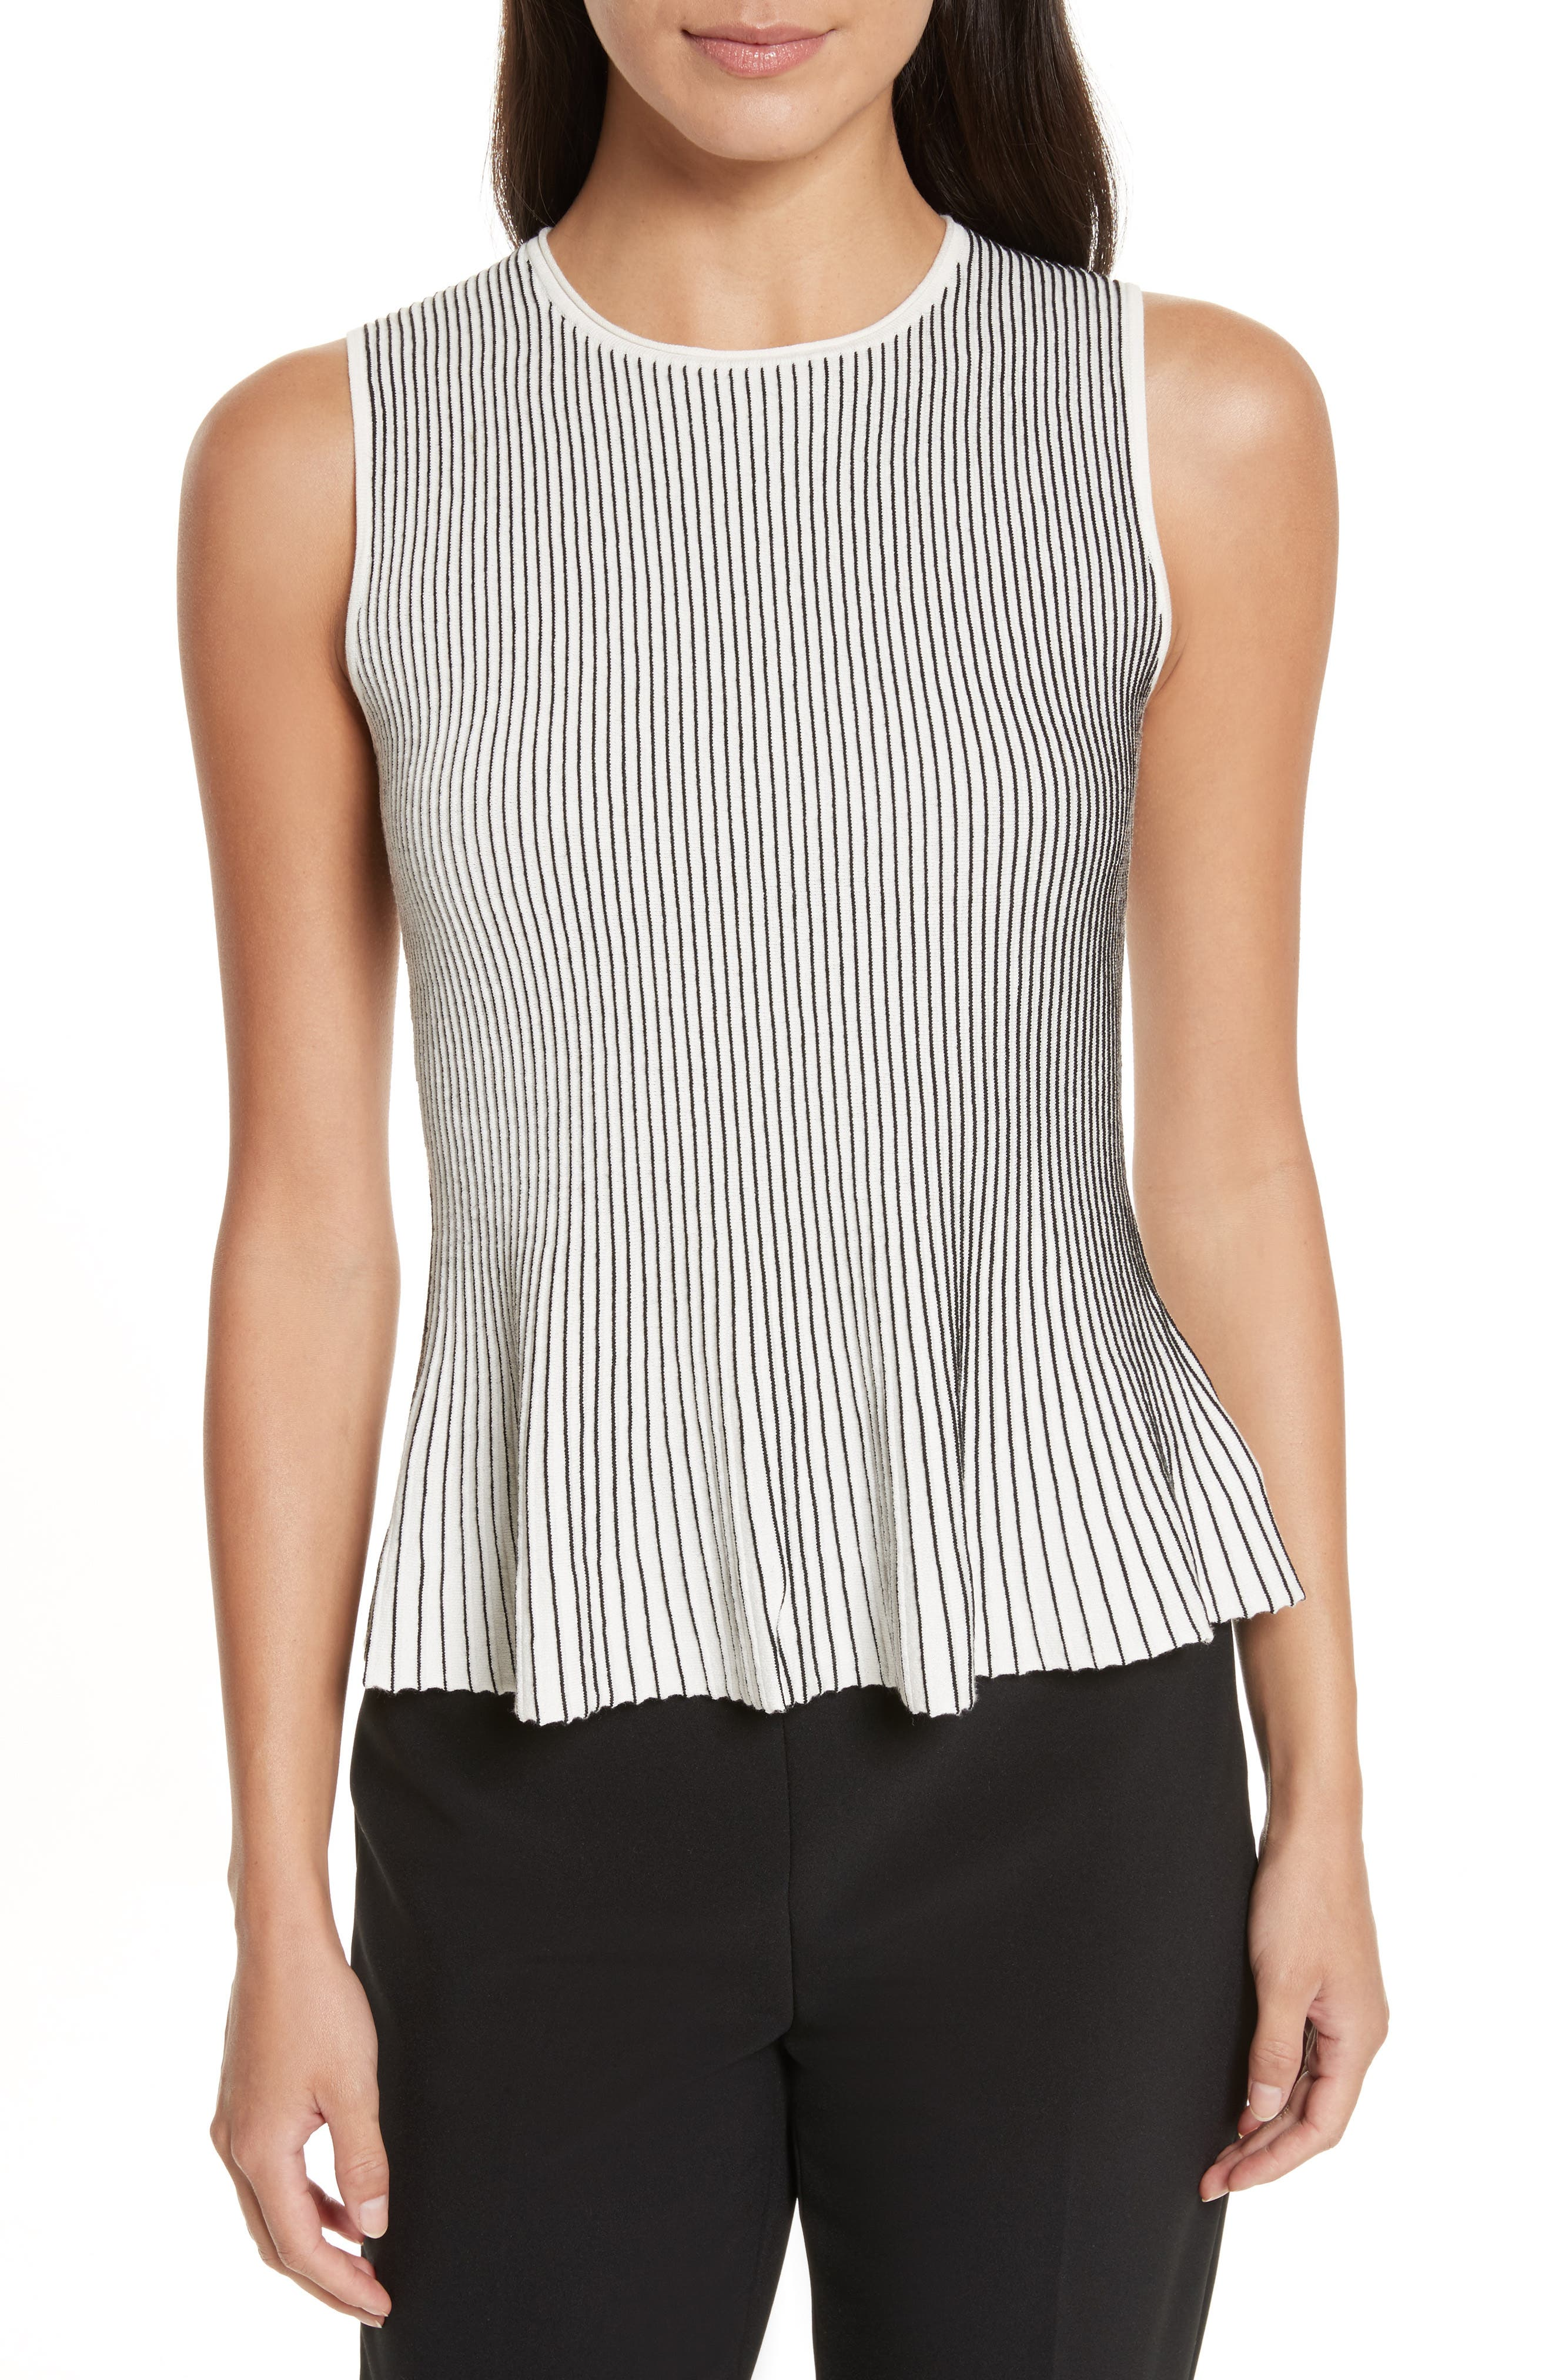 Canelis Prosecco Sleeveless Rib Knit Top,                         Main,                         color, Eggshell/ Black